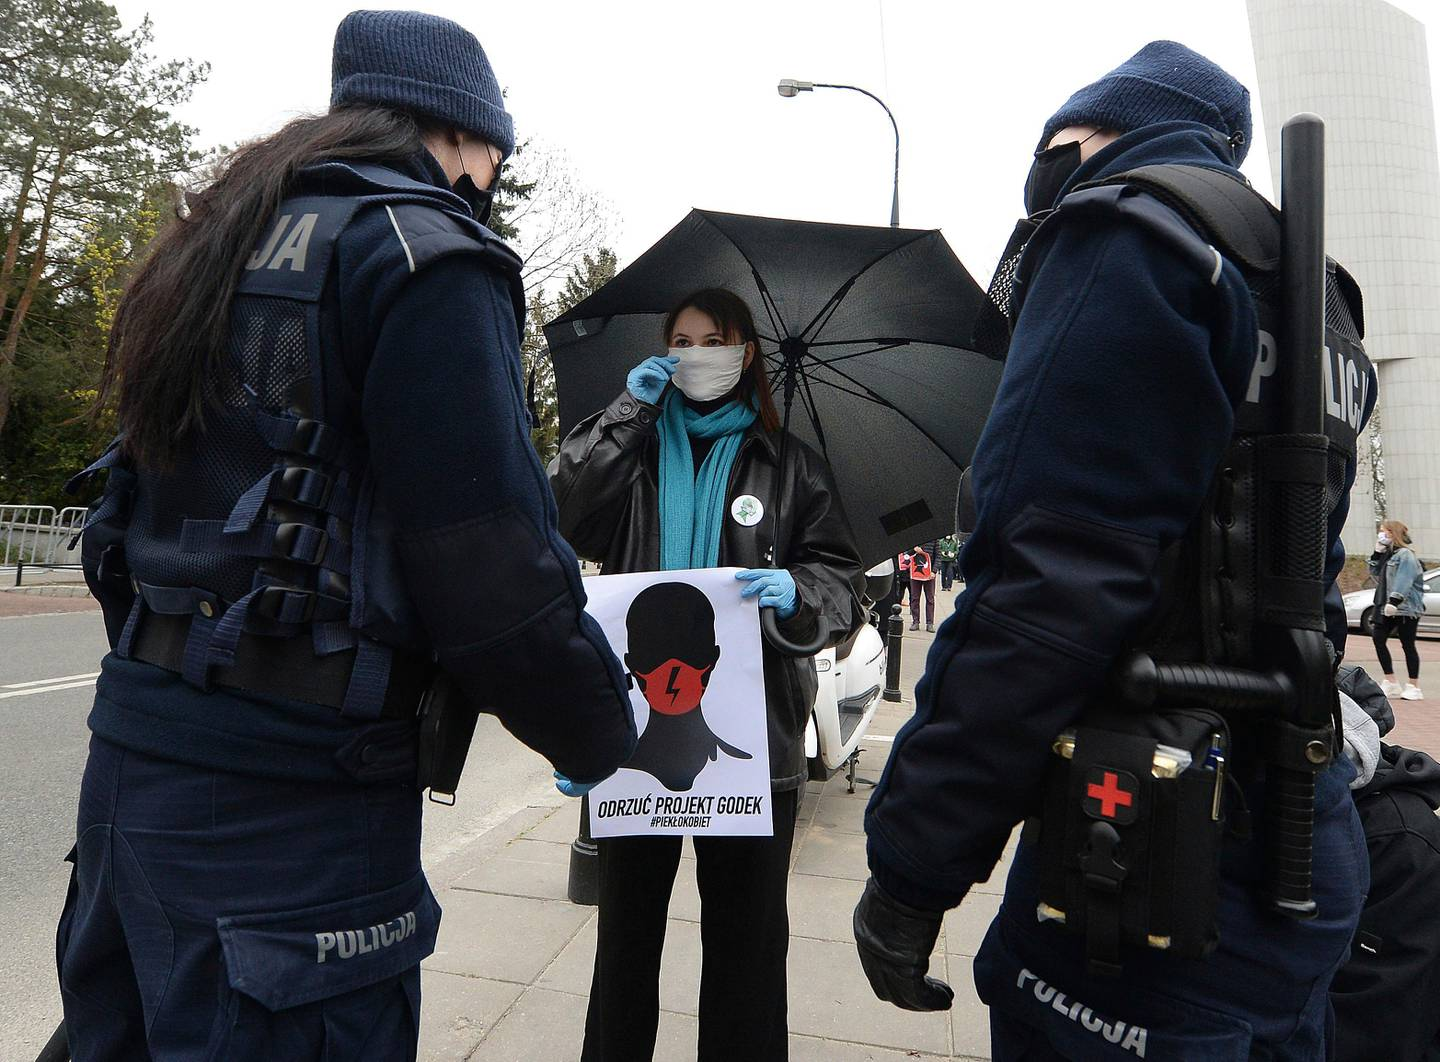 A women's rights activist, wearing a mask against the spread of the coronavirus, protests against a draft law tightening Poland's strict anti-abortion law near the parliament that was debating the draft law, in Warsaw, Poland, on Wednesday, April 15, 2020. (AP Photo/Czarek Sokolowski)